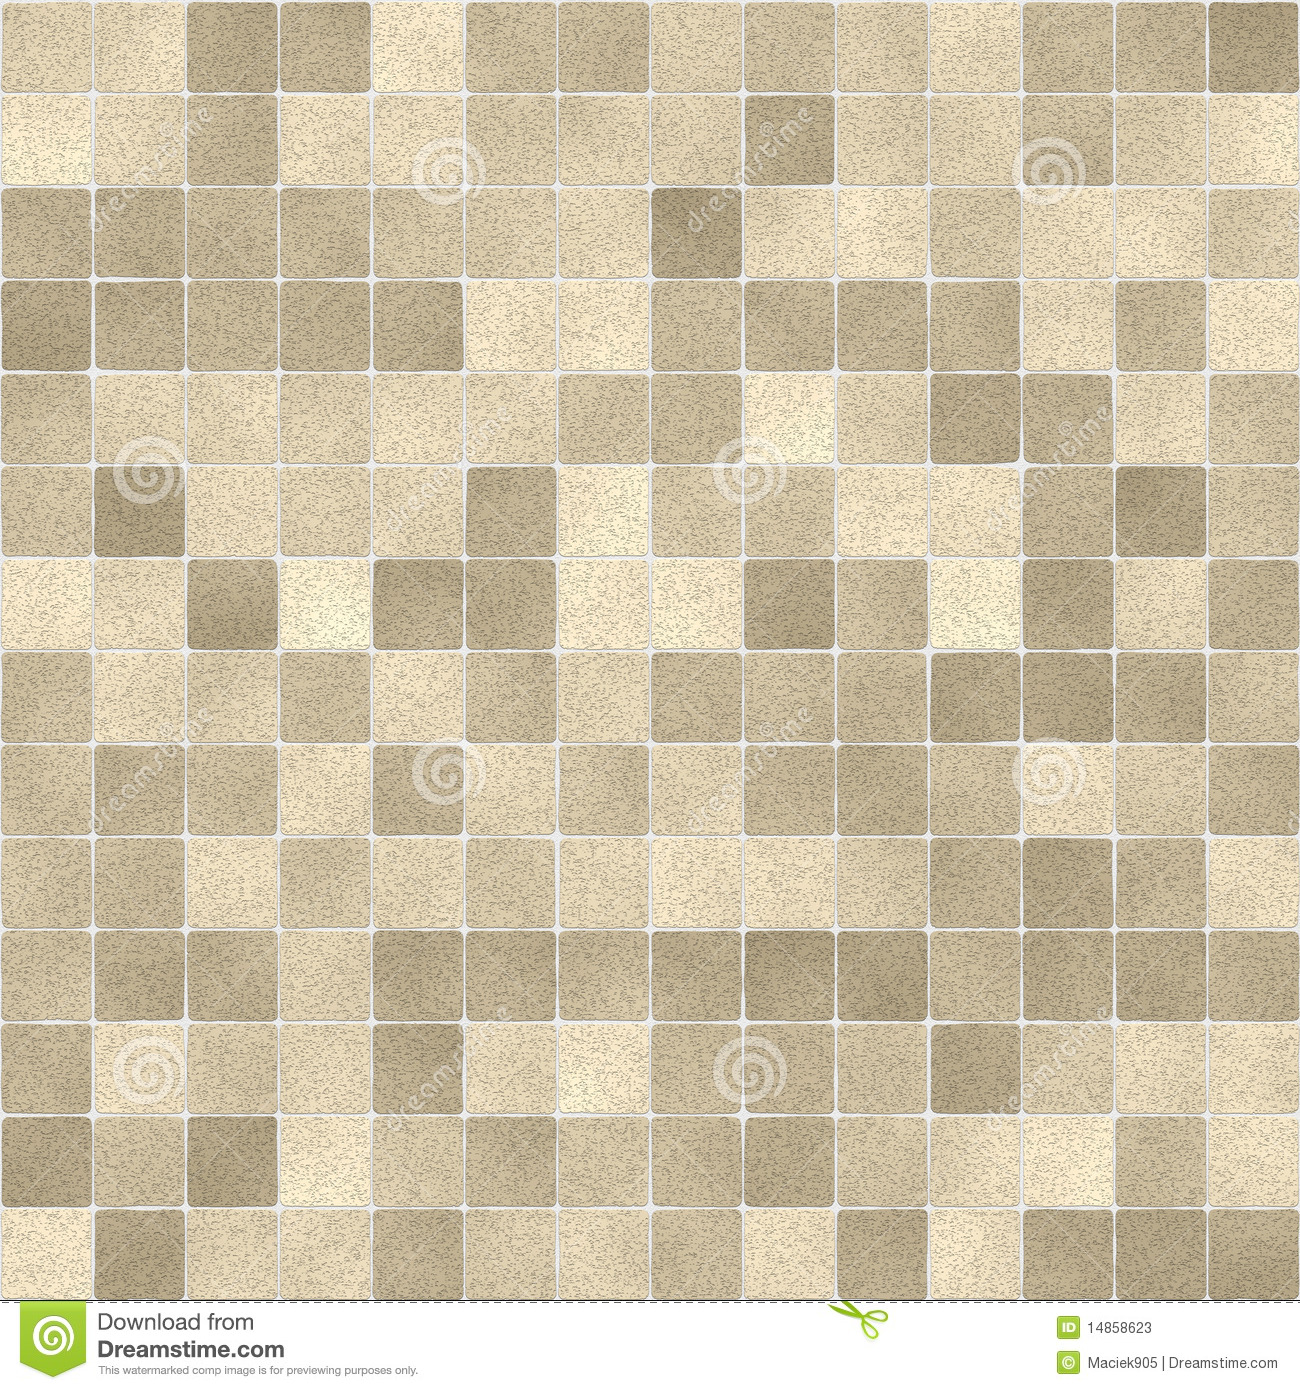 Bathroom Tiles Wallpaper seamless bathroom tiles pattern stock photos - image: 14858623